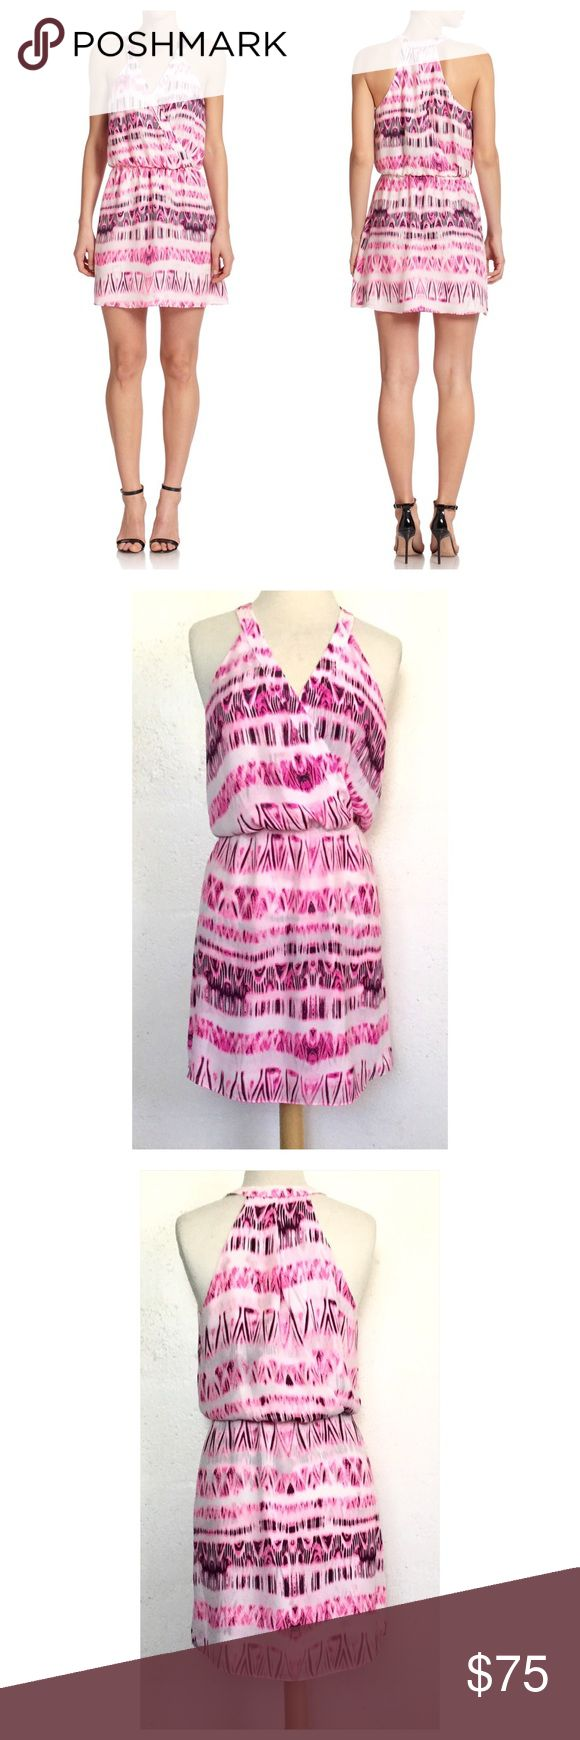 "Parker Kita Dress Parker Kita dress with an Aztec print.  The color is Pop Pink Cosmos.  Measures about 37"" in length and 16 1/2"" across the armpits.  The waist is elasticized, surplice neckline front and back.  100% Polyester.  Dry clean only.  No trades. Parker Dresses Mini"